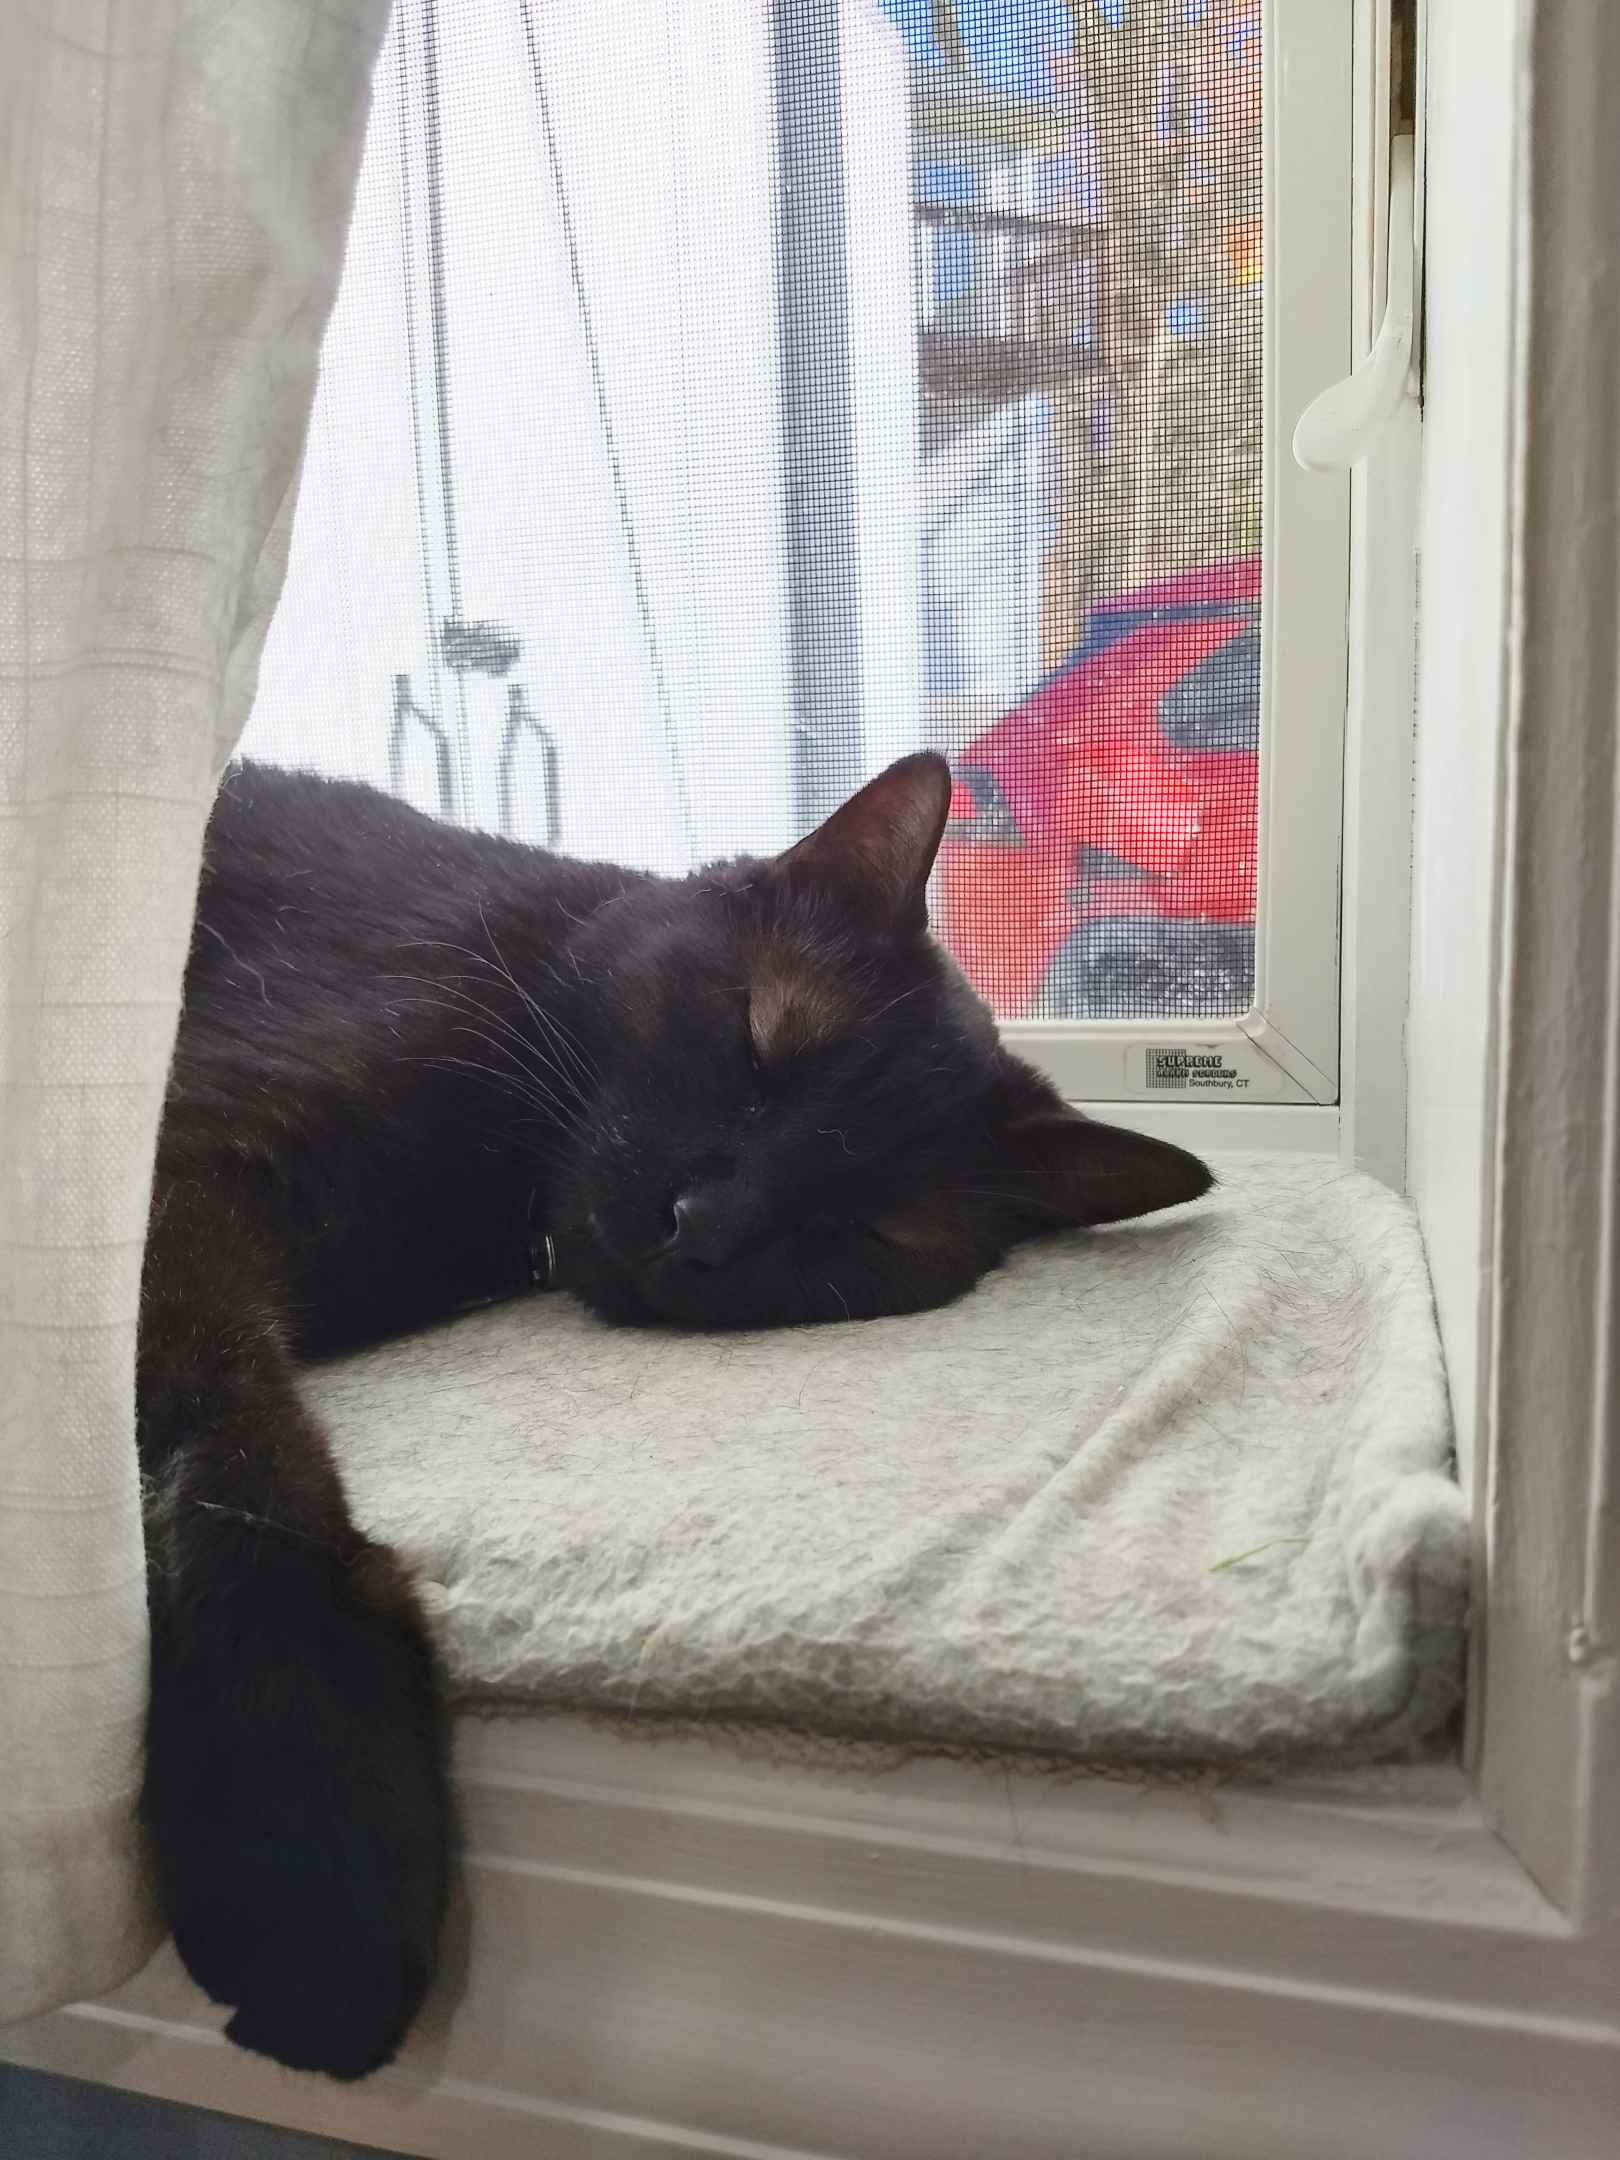 Black cat napping on windowsill with one paw hanging off.